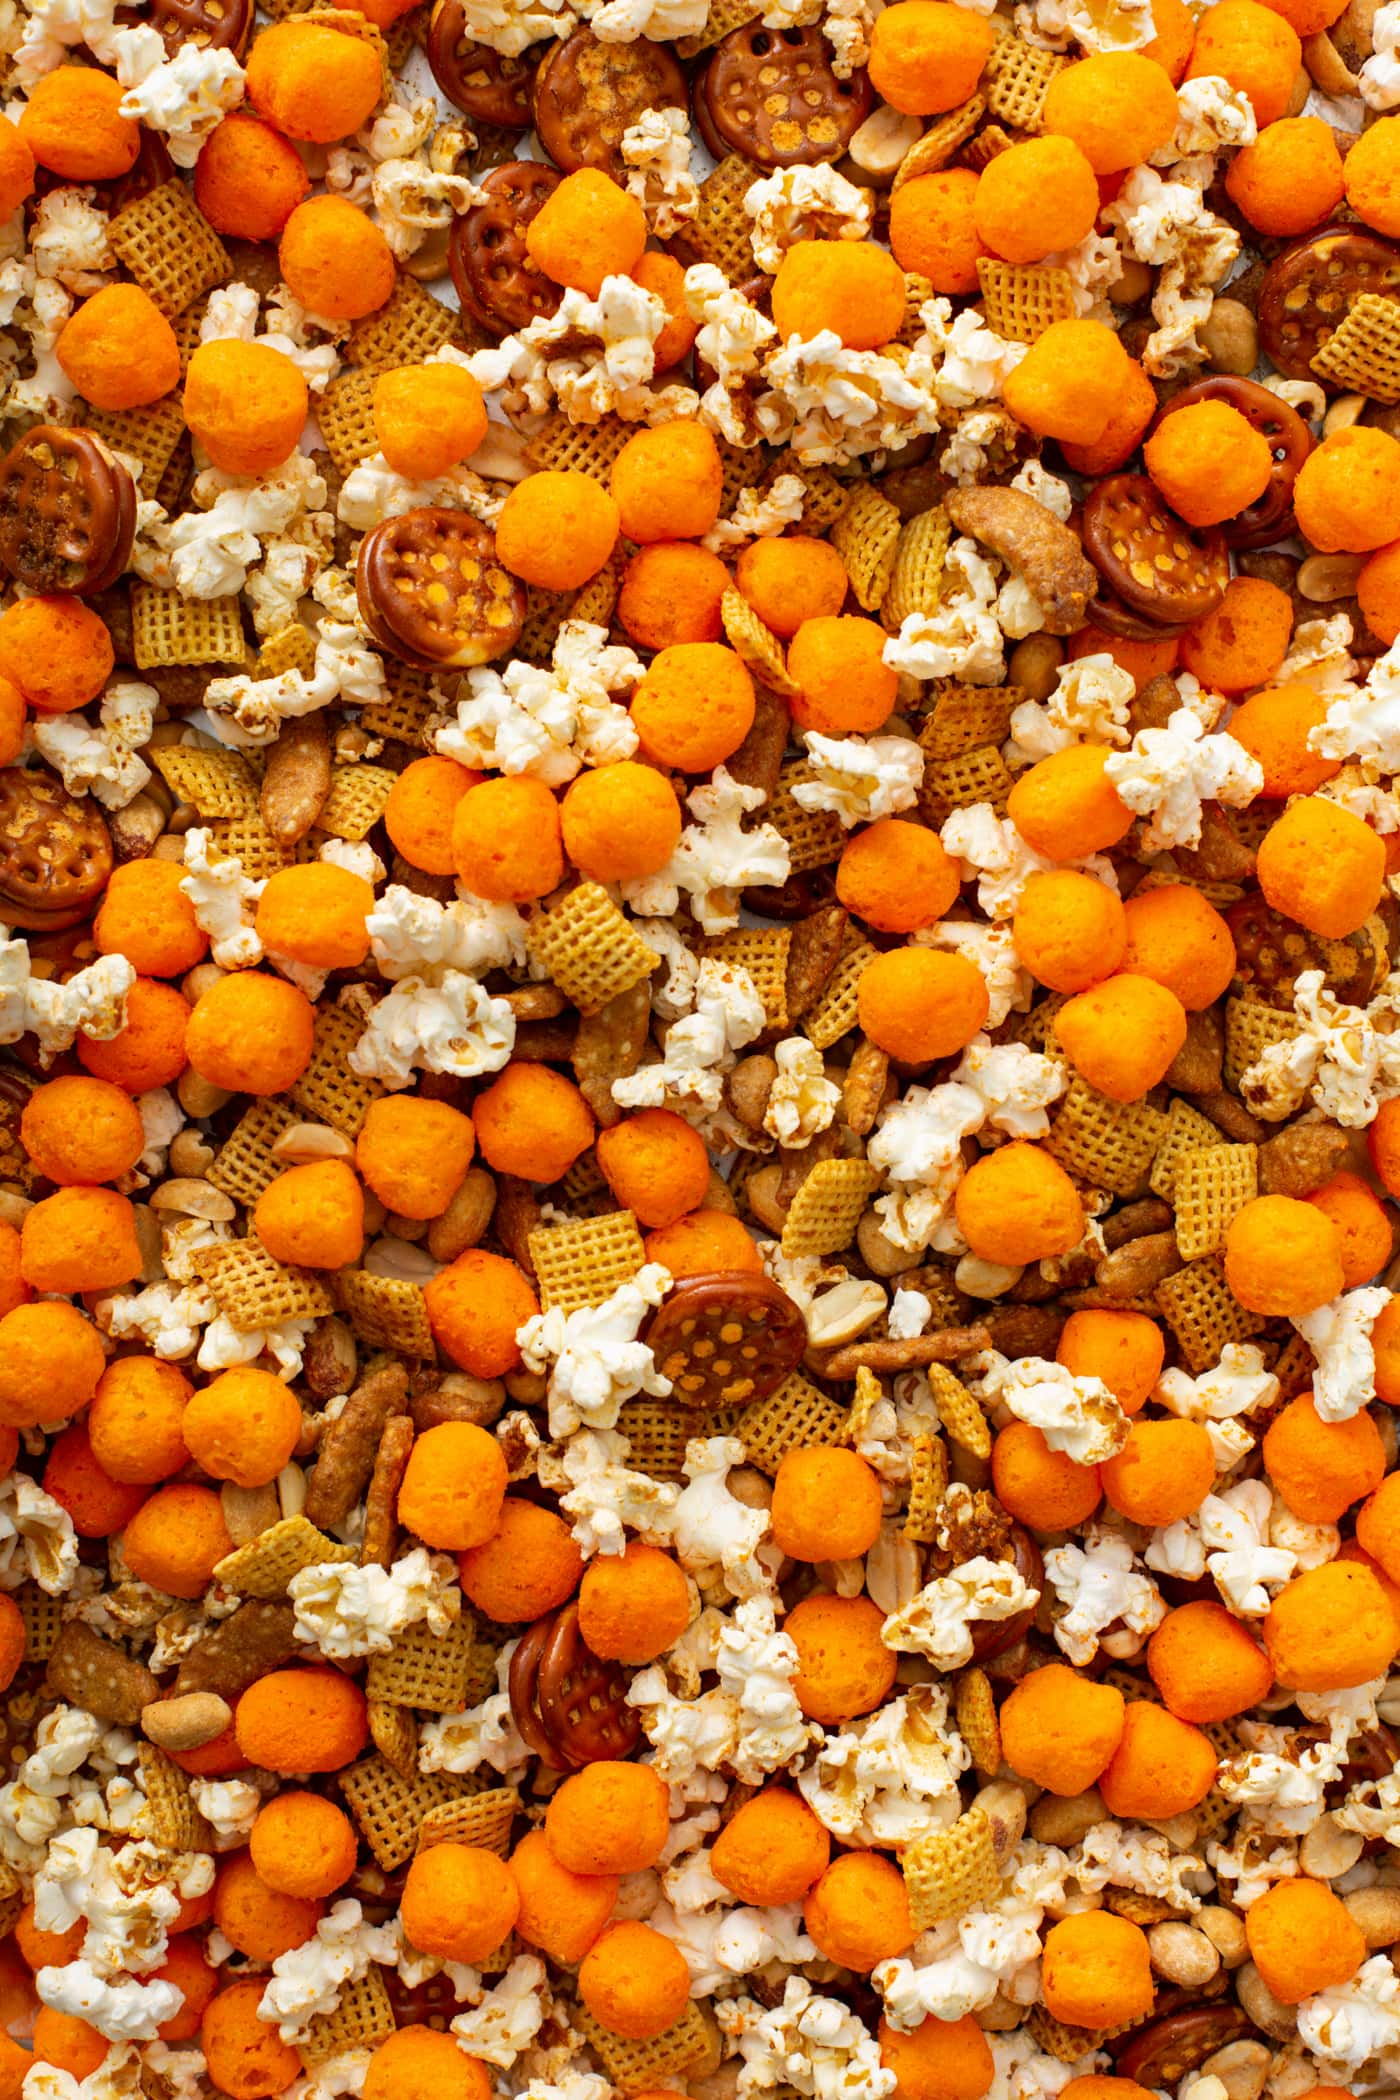 A close up of March madness snack mix. There are cheese balls, pretzels, sesame sticks, chex and popcorn mixed together in butter and spices.